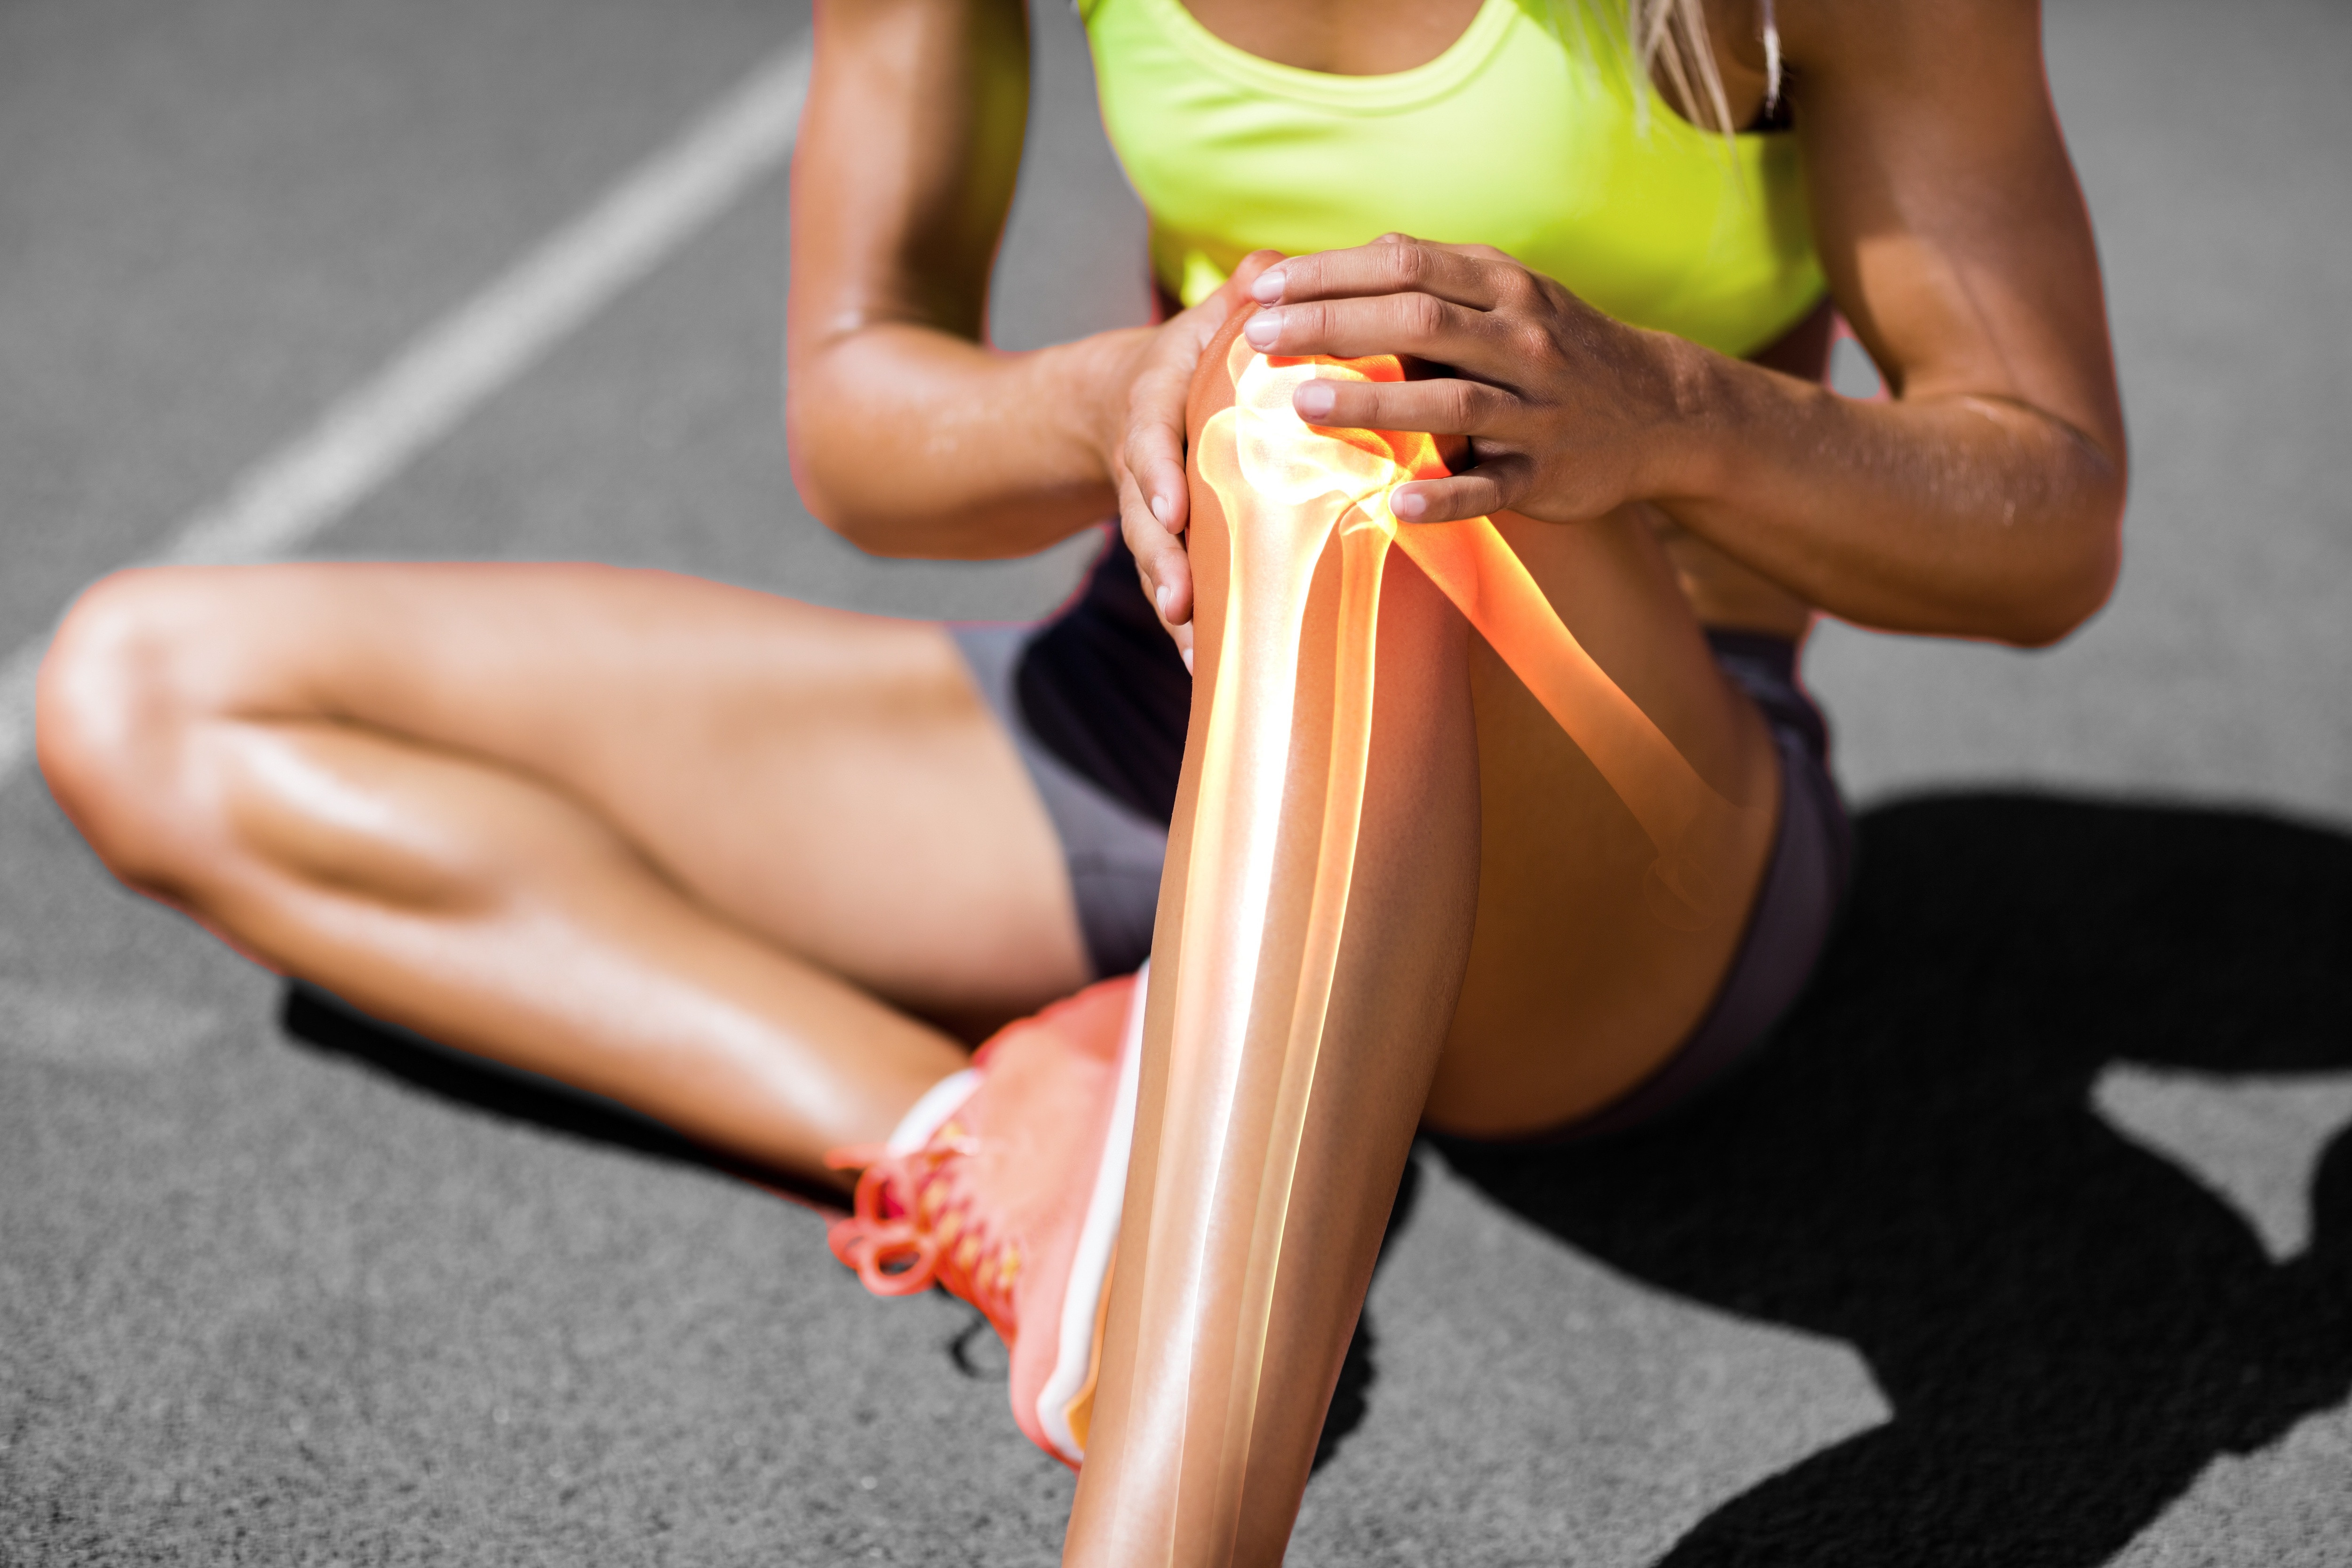 How to Reduce ACL Reinjury Risk